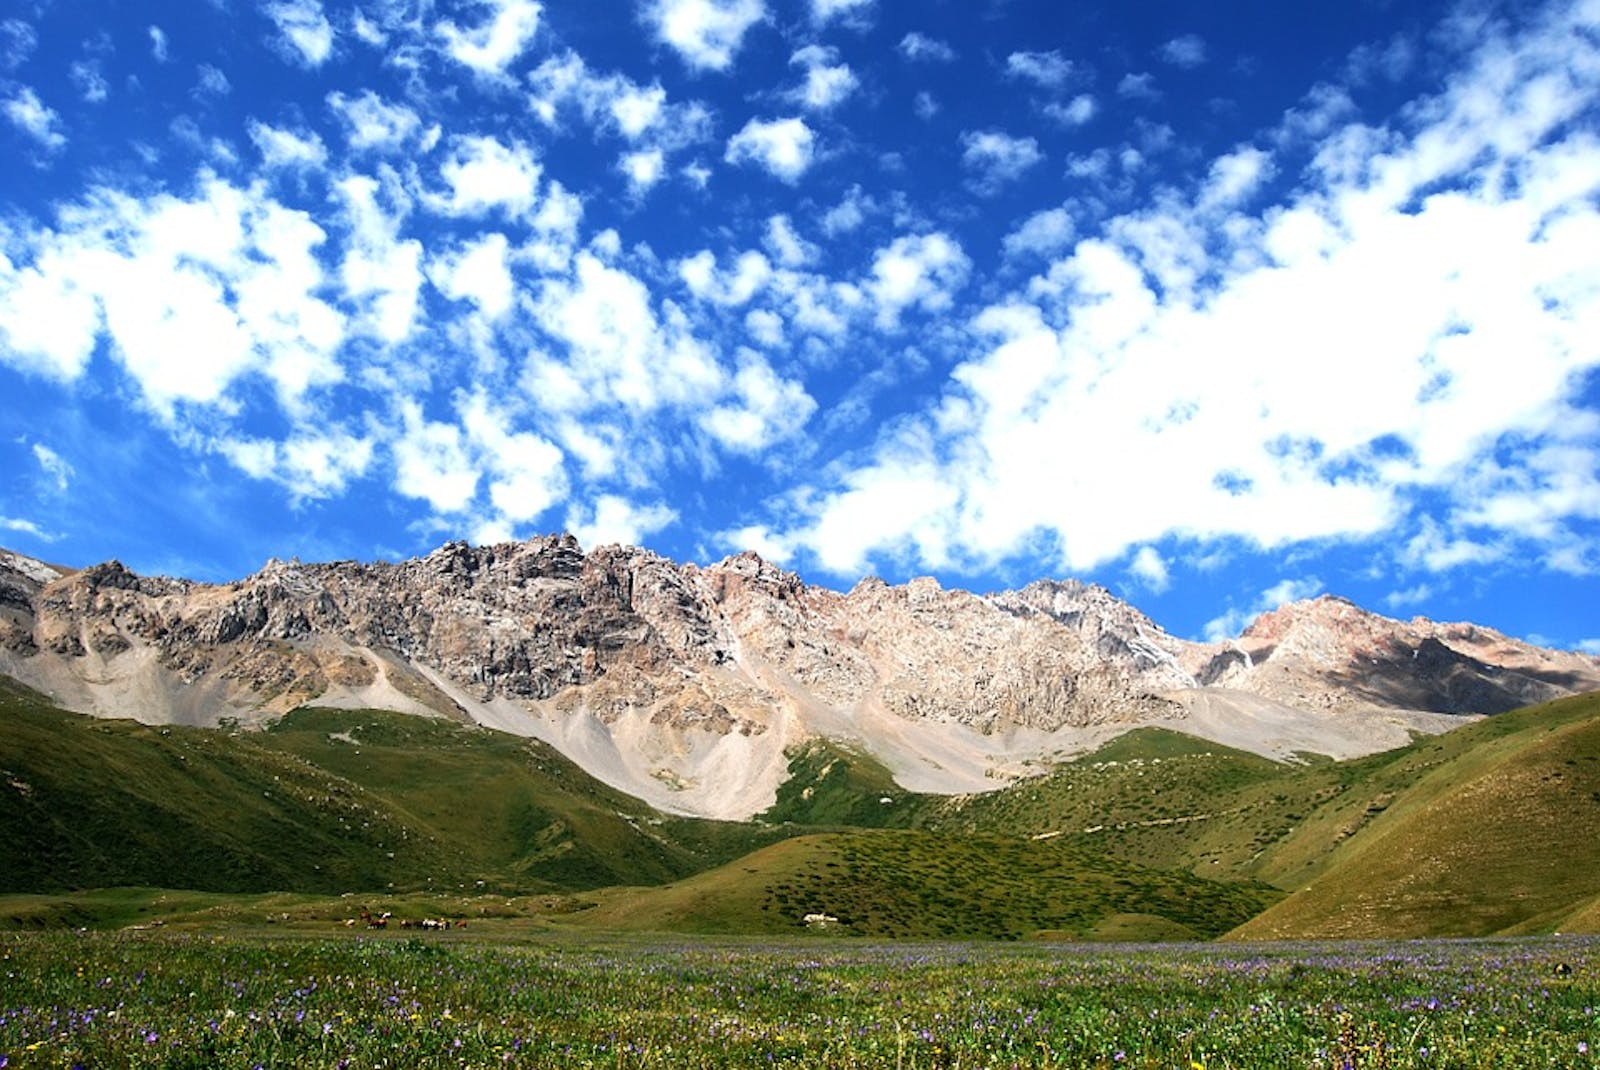 Tian Shan Foothill Arid Steppe